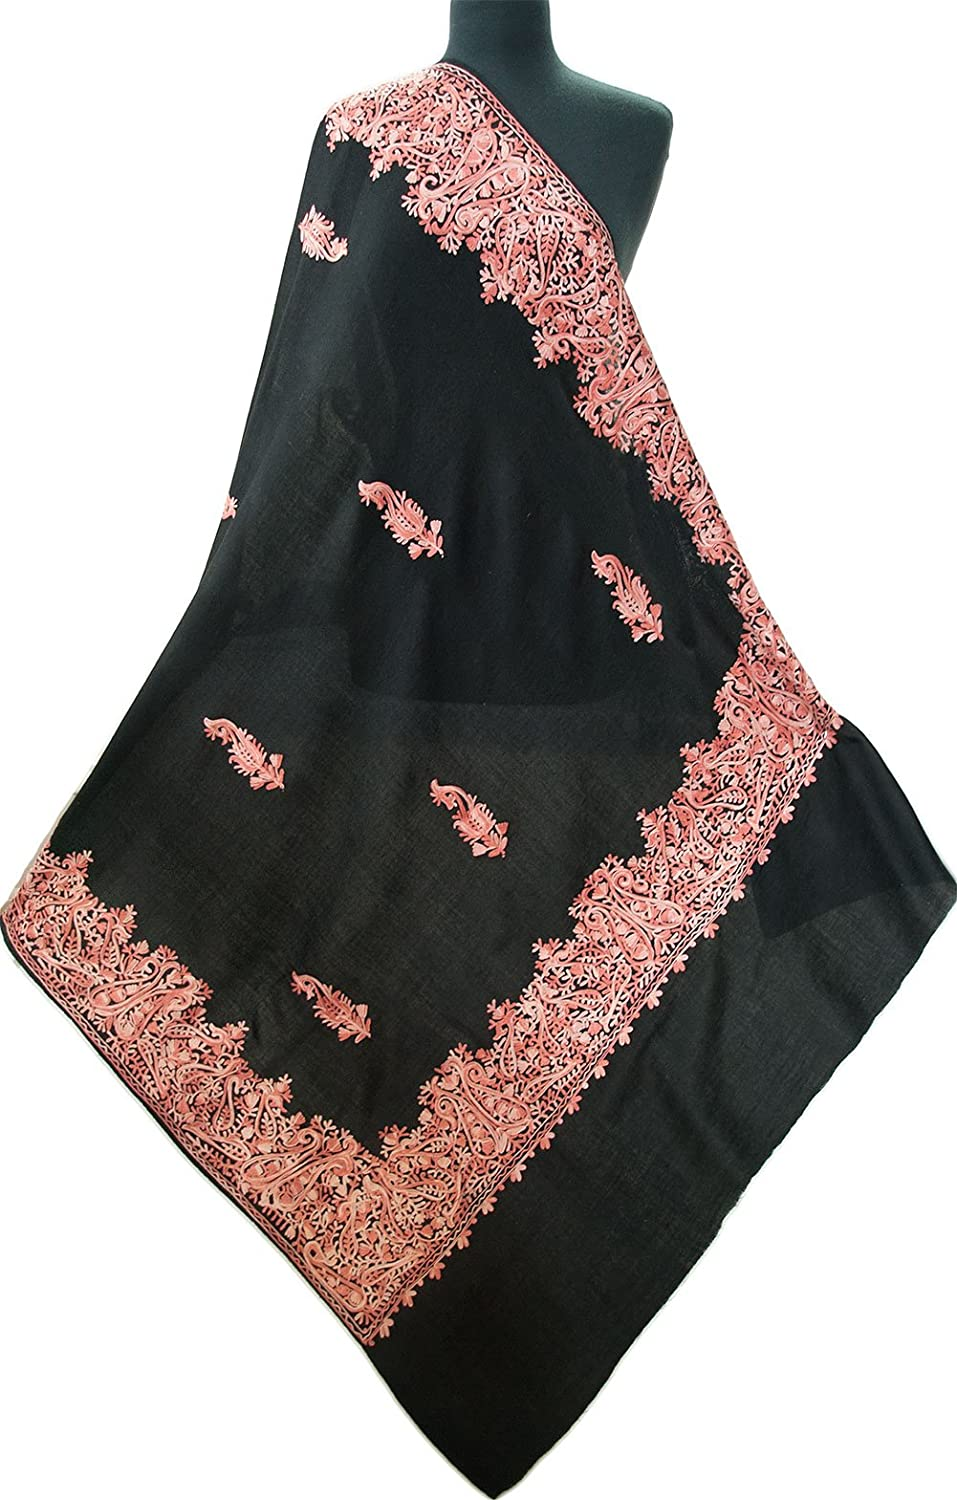 3b9d4b27389 Large, Embroidered Shawl. Black Wool Rose Crewel Embroidery. Kashmir ...